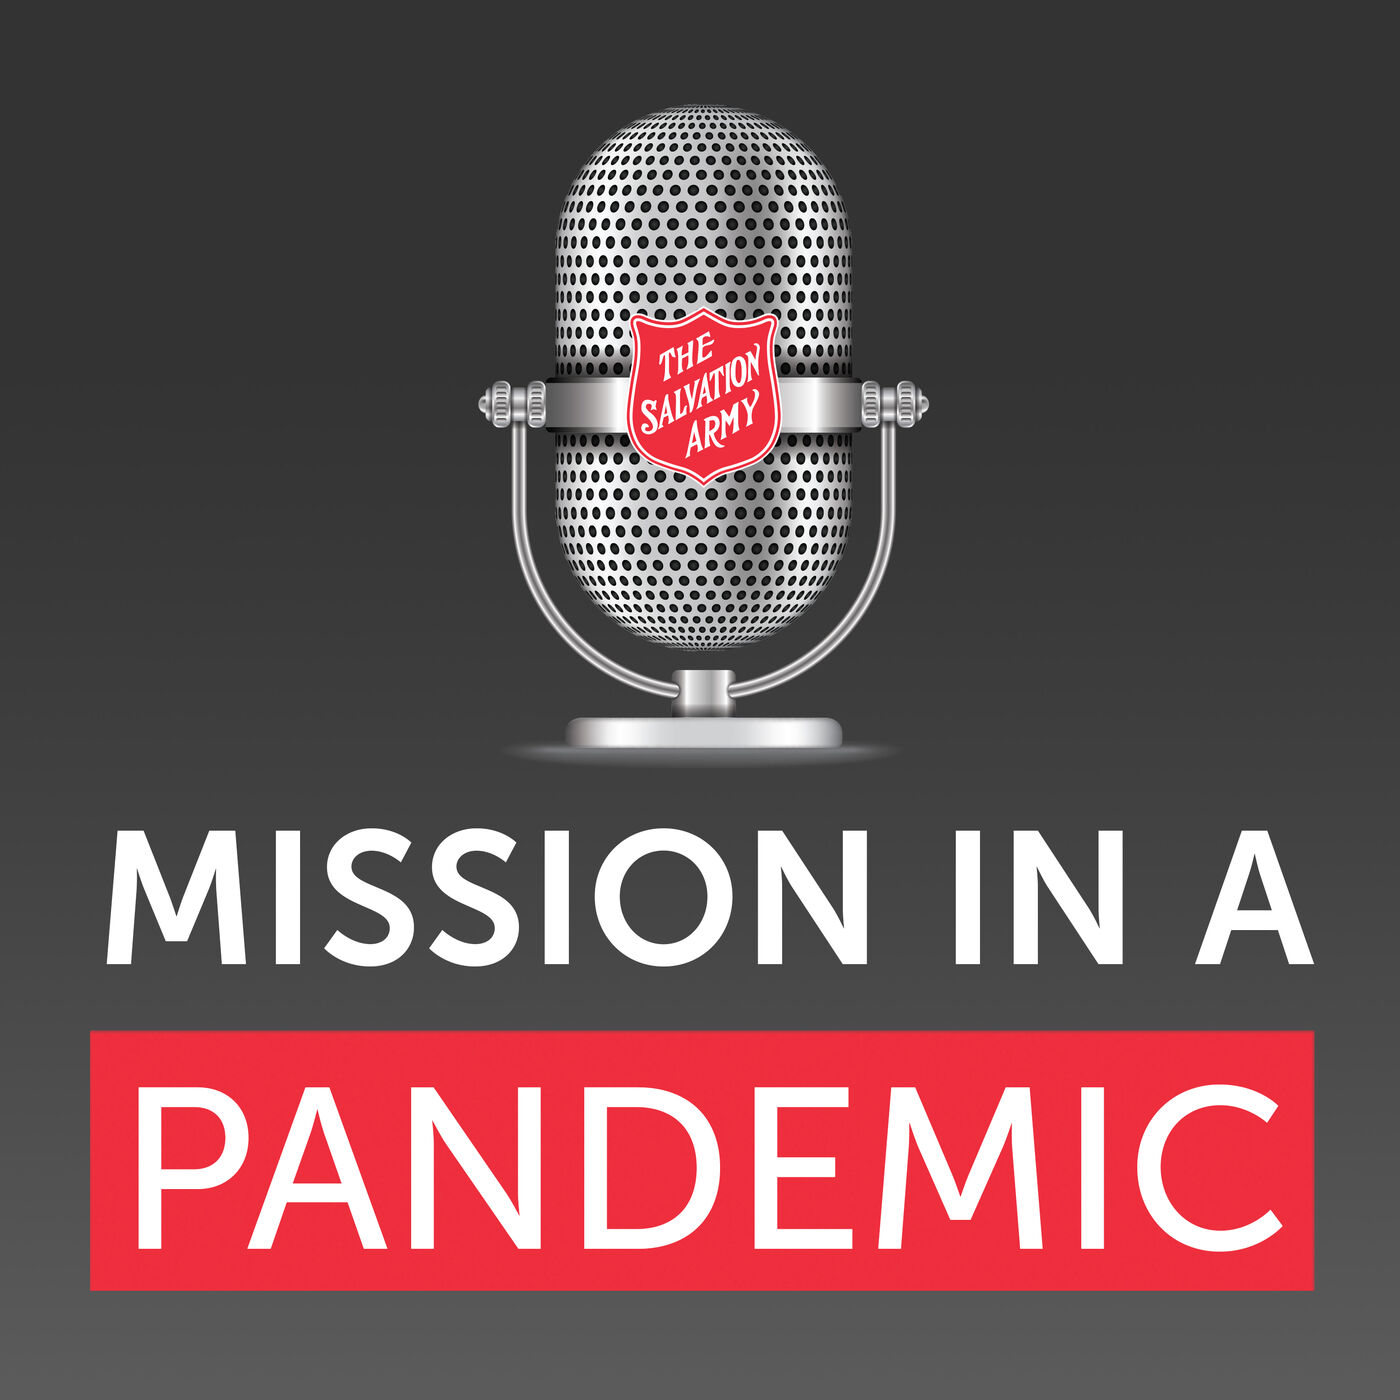 Youth Ministry in a Pandemic